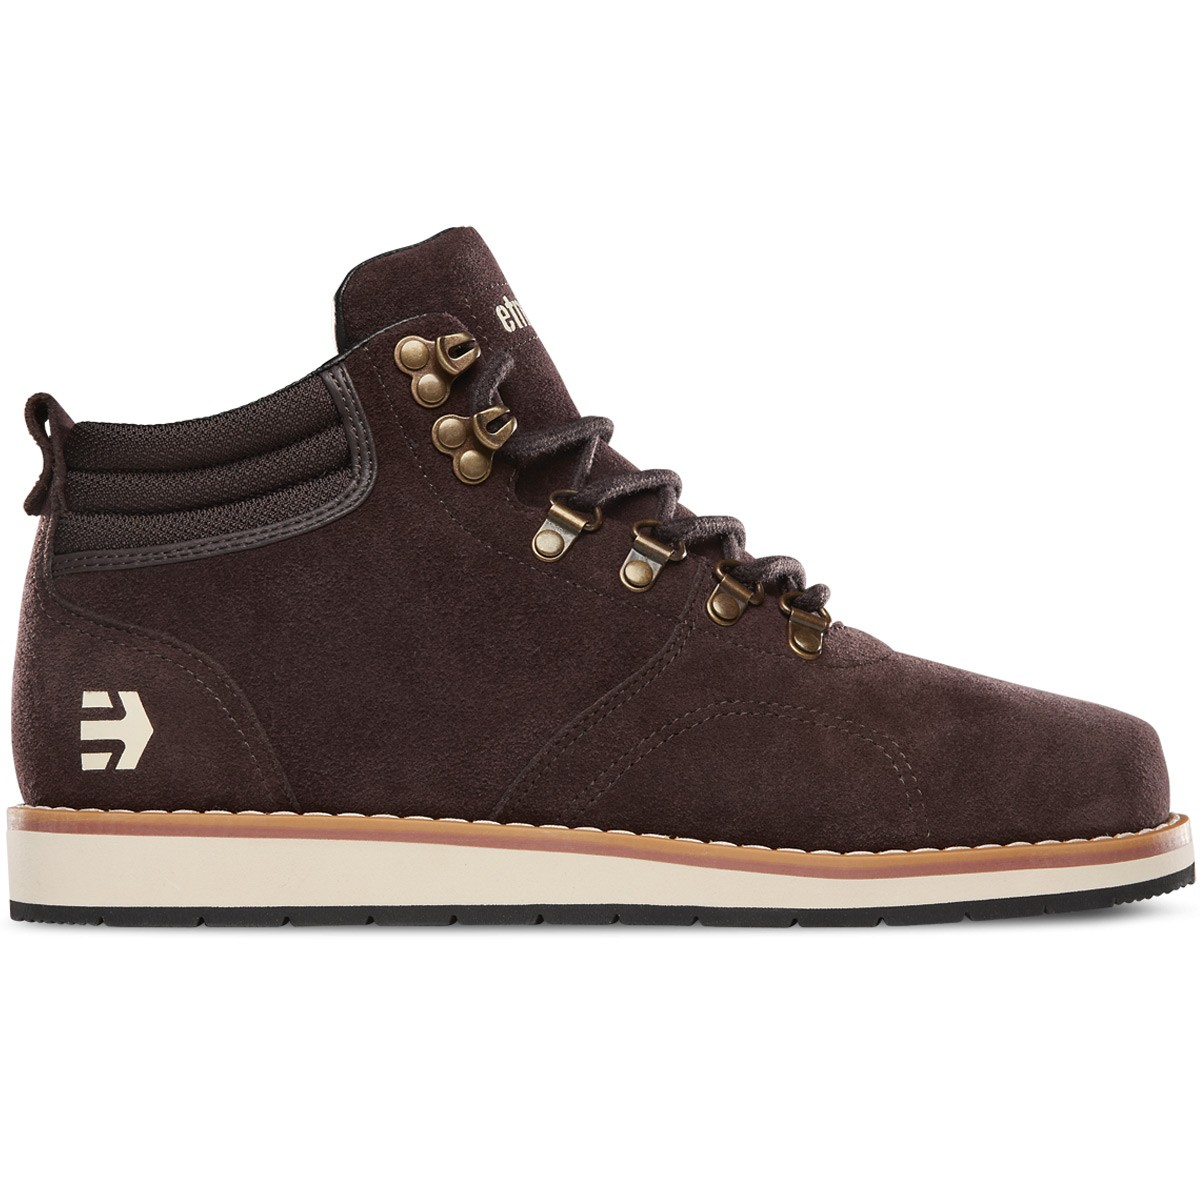 Etnies Polarise Shoes - Dark Brown - 9.0